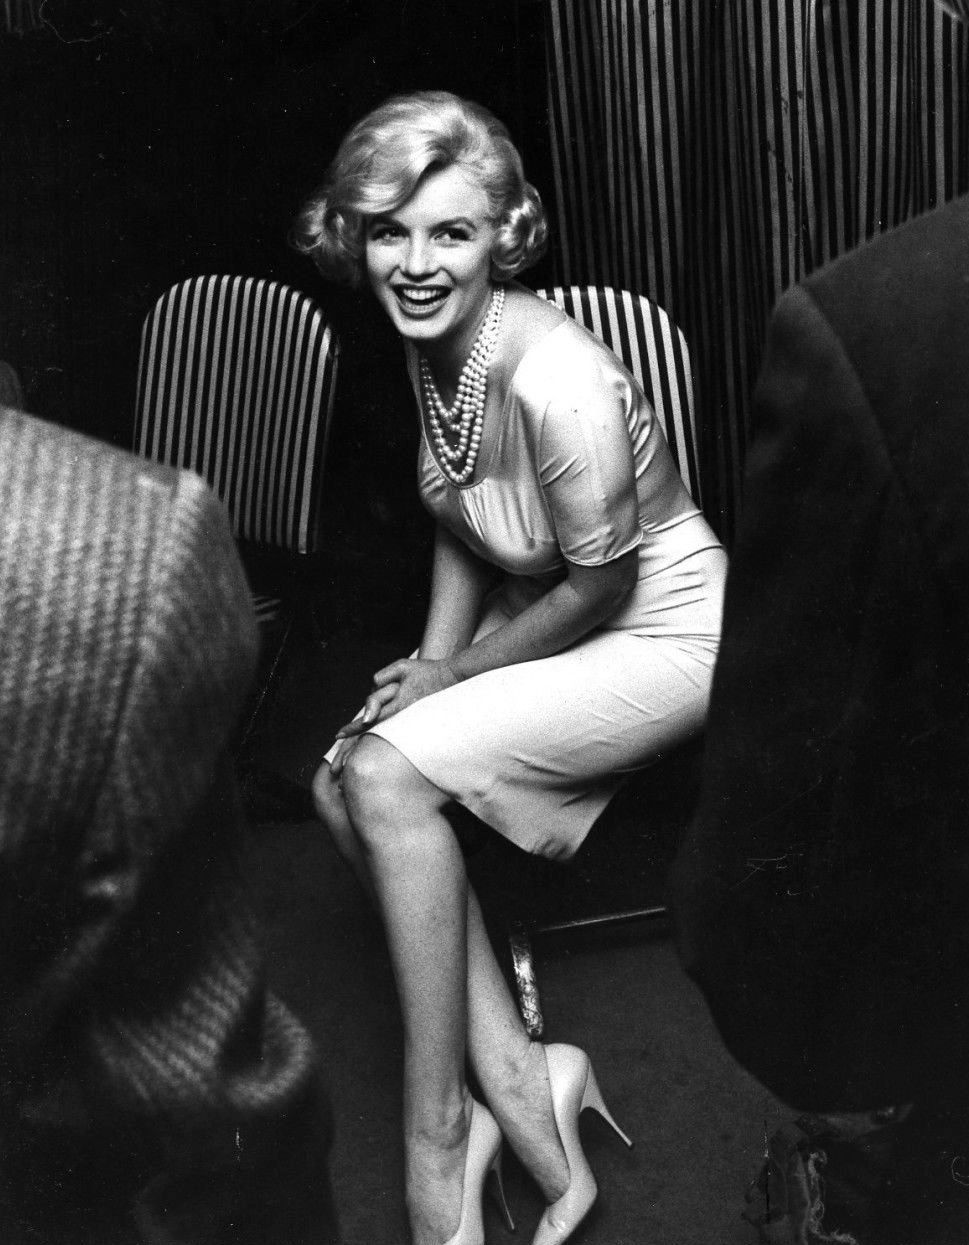 Natural Black and White Photo of Marilyn Monroe